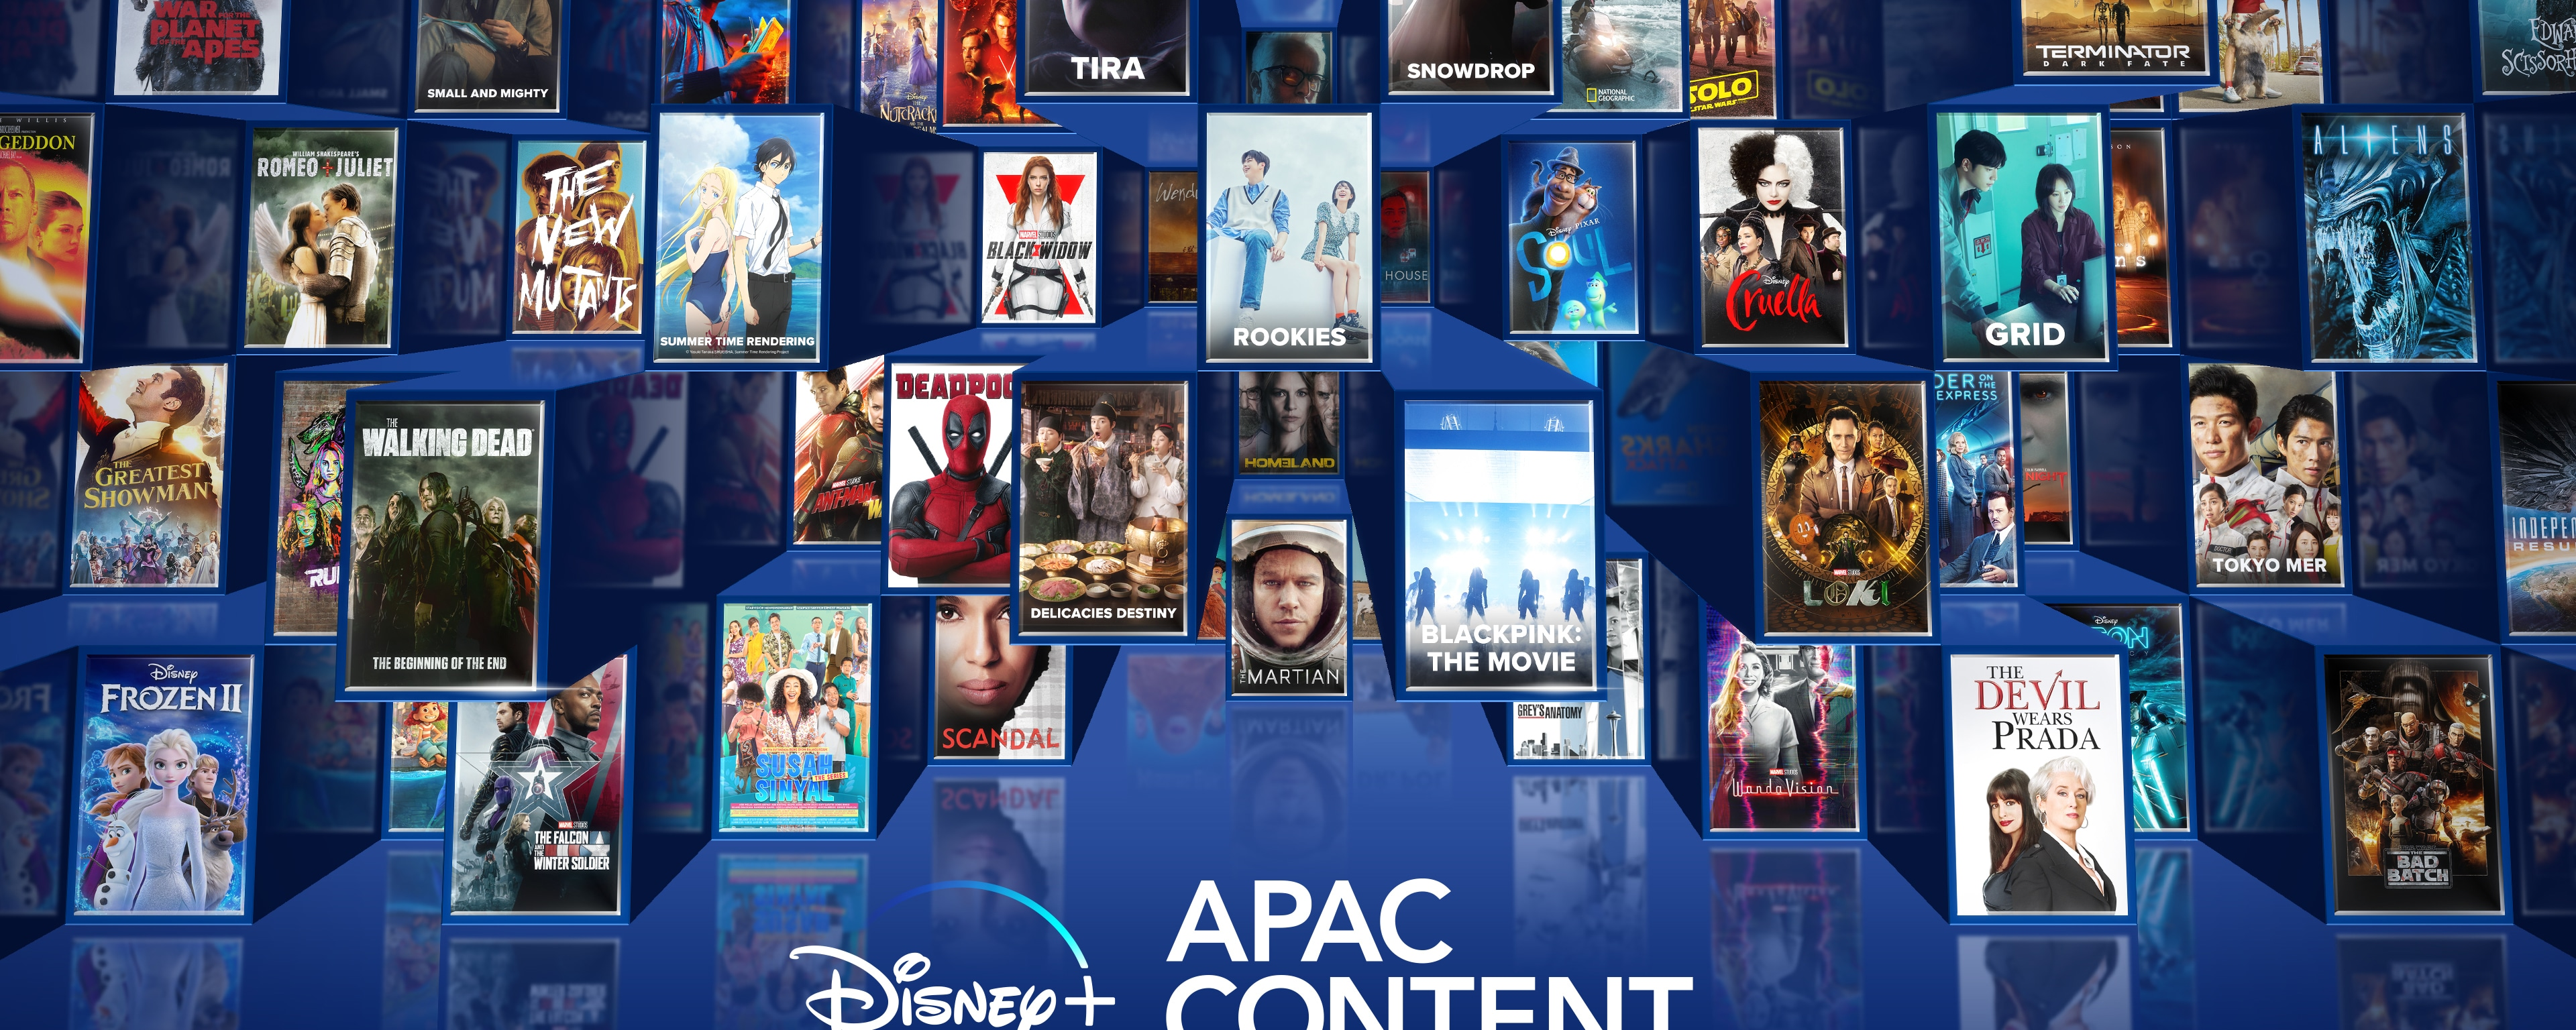 Disney+ Showcases Ambitious New Content Slate From Asia Pacific